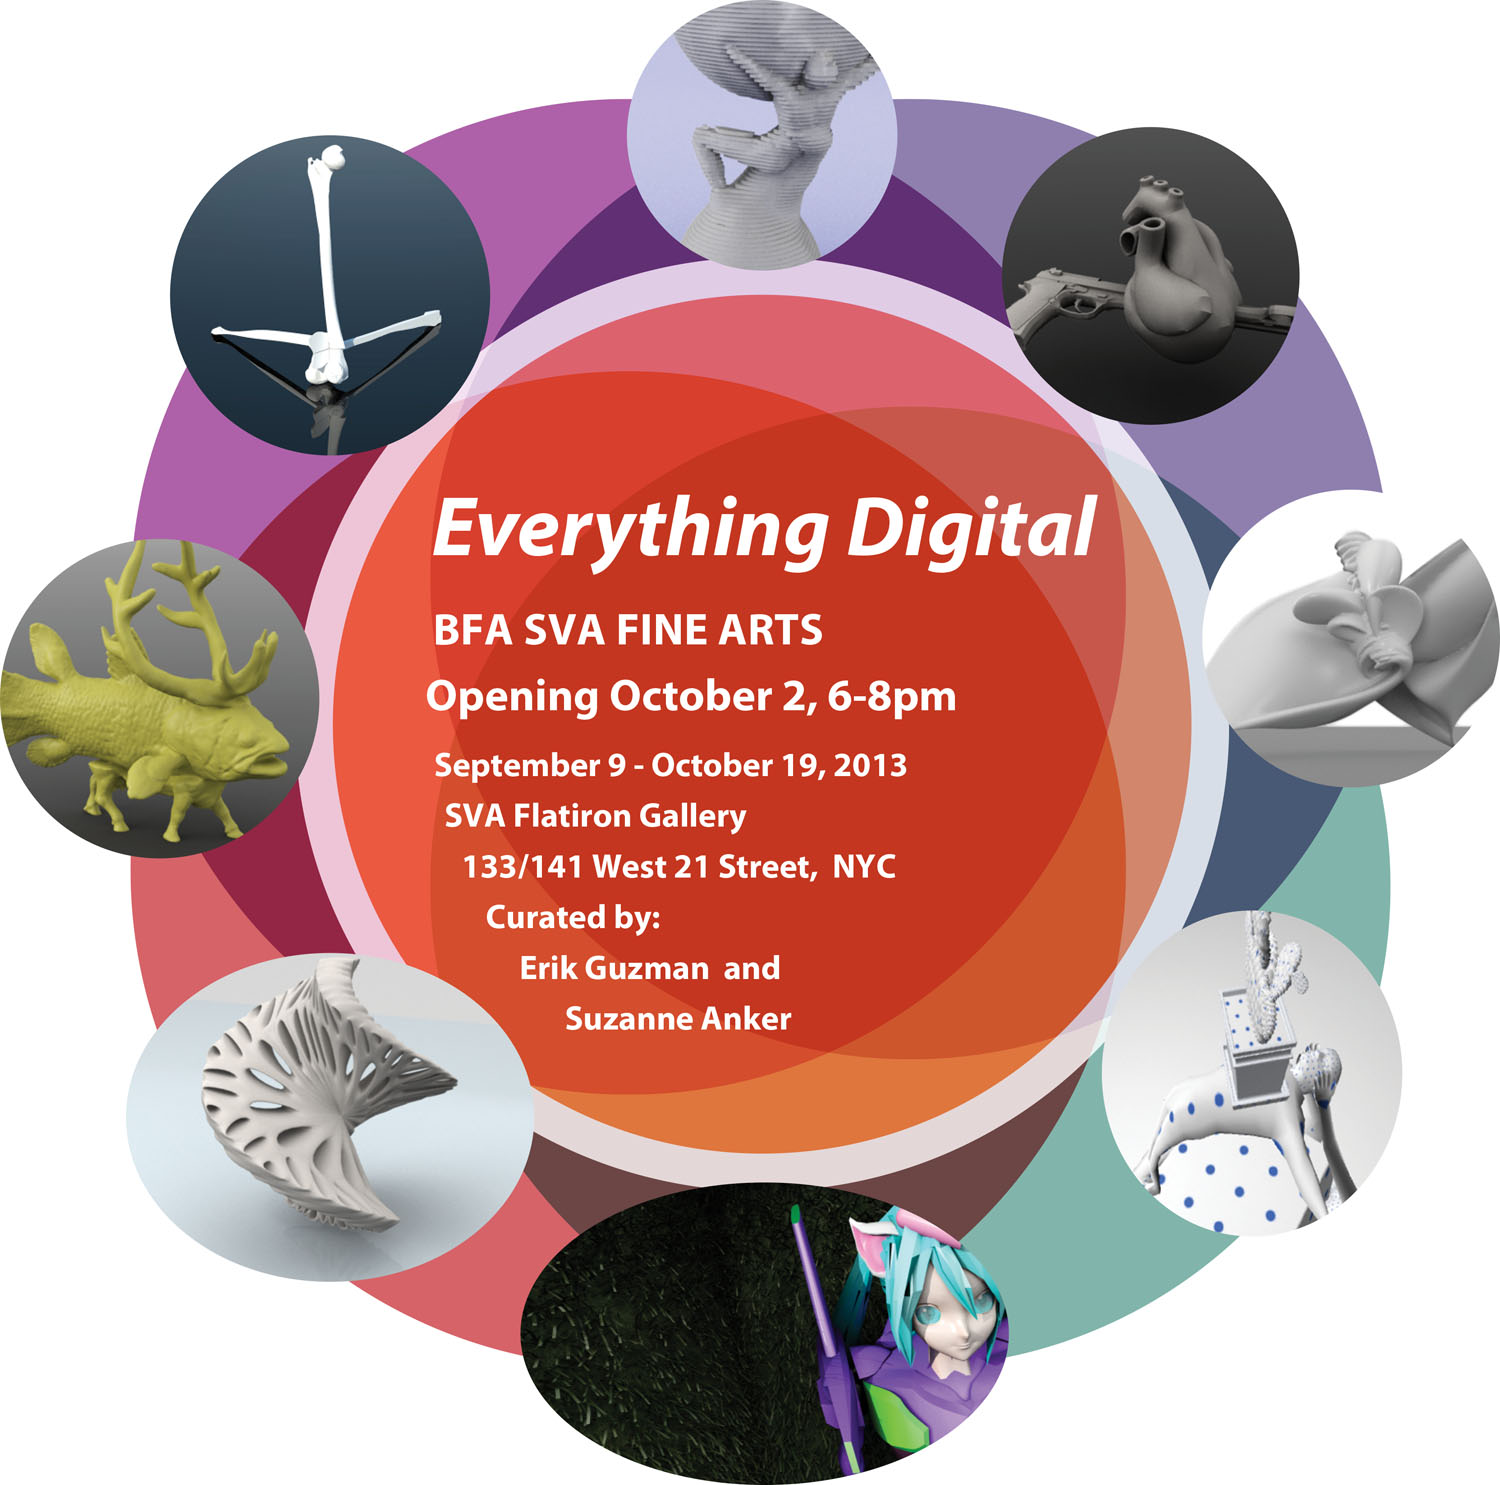 An advertisement for an exhibition titled, Everything Digital, at the SVA Flatiron Gallery. The exhibition will be on view from September 9, through October 19, 2013. A reception will be held on October 2, 2013 from 6-8pm.